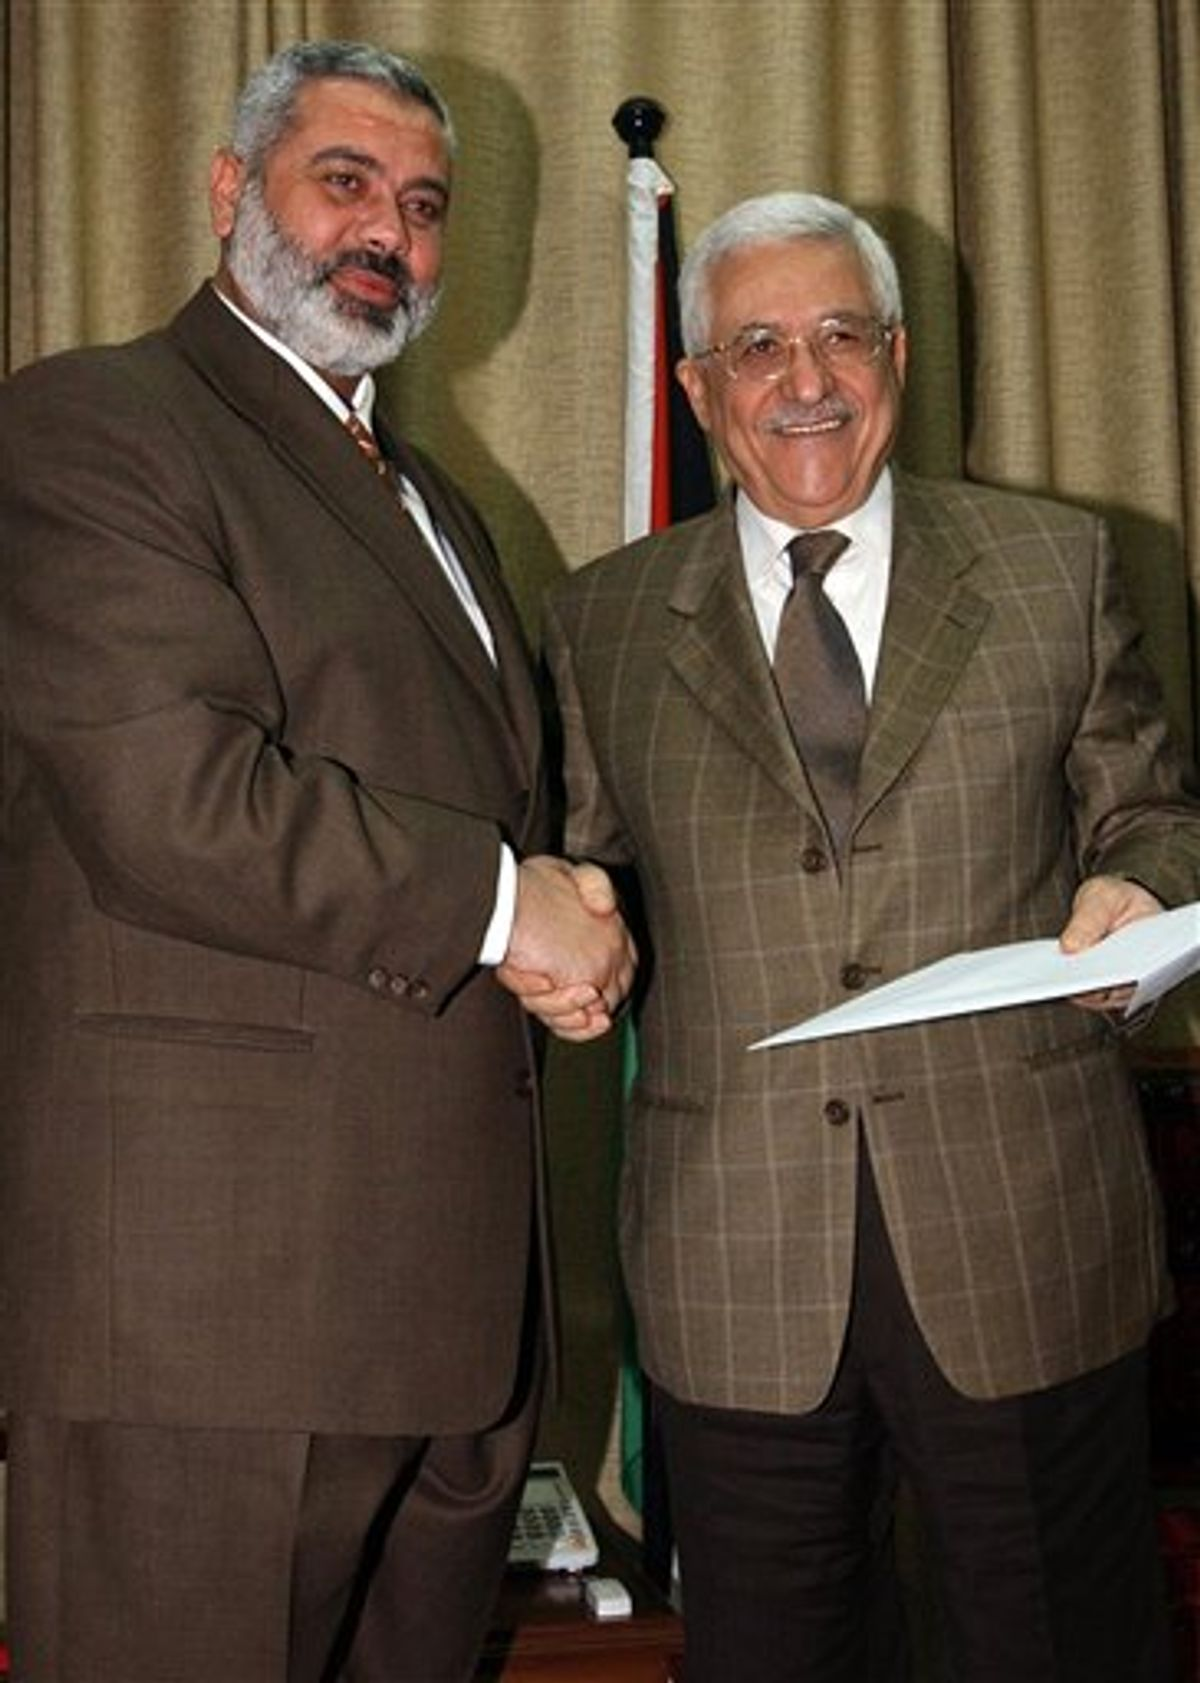 FILE - In this Sunday, March 19, 2006 file photo made available by the Palestinian Authority, the Palestinian Authority President Mahmoud Abbas, right, holds a file with the proposal for a new Palestinian Cabinet as he shakes hands with Palestinian Prime Minister Ismail Haniyeh, from the Islamic group Hamas, in Gaza City. Hamas officials said Tuesday, May 3, 2011, that the Islamic militant group would honor an unofficial truce with Israel after forming a new government with Palestinian rivals from the West Bank. (AP Photo/Abdel Alahim Abu Askar/Palestinian Authority, File)  (AP)